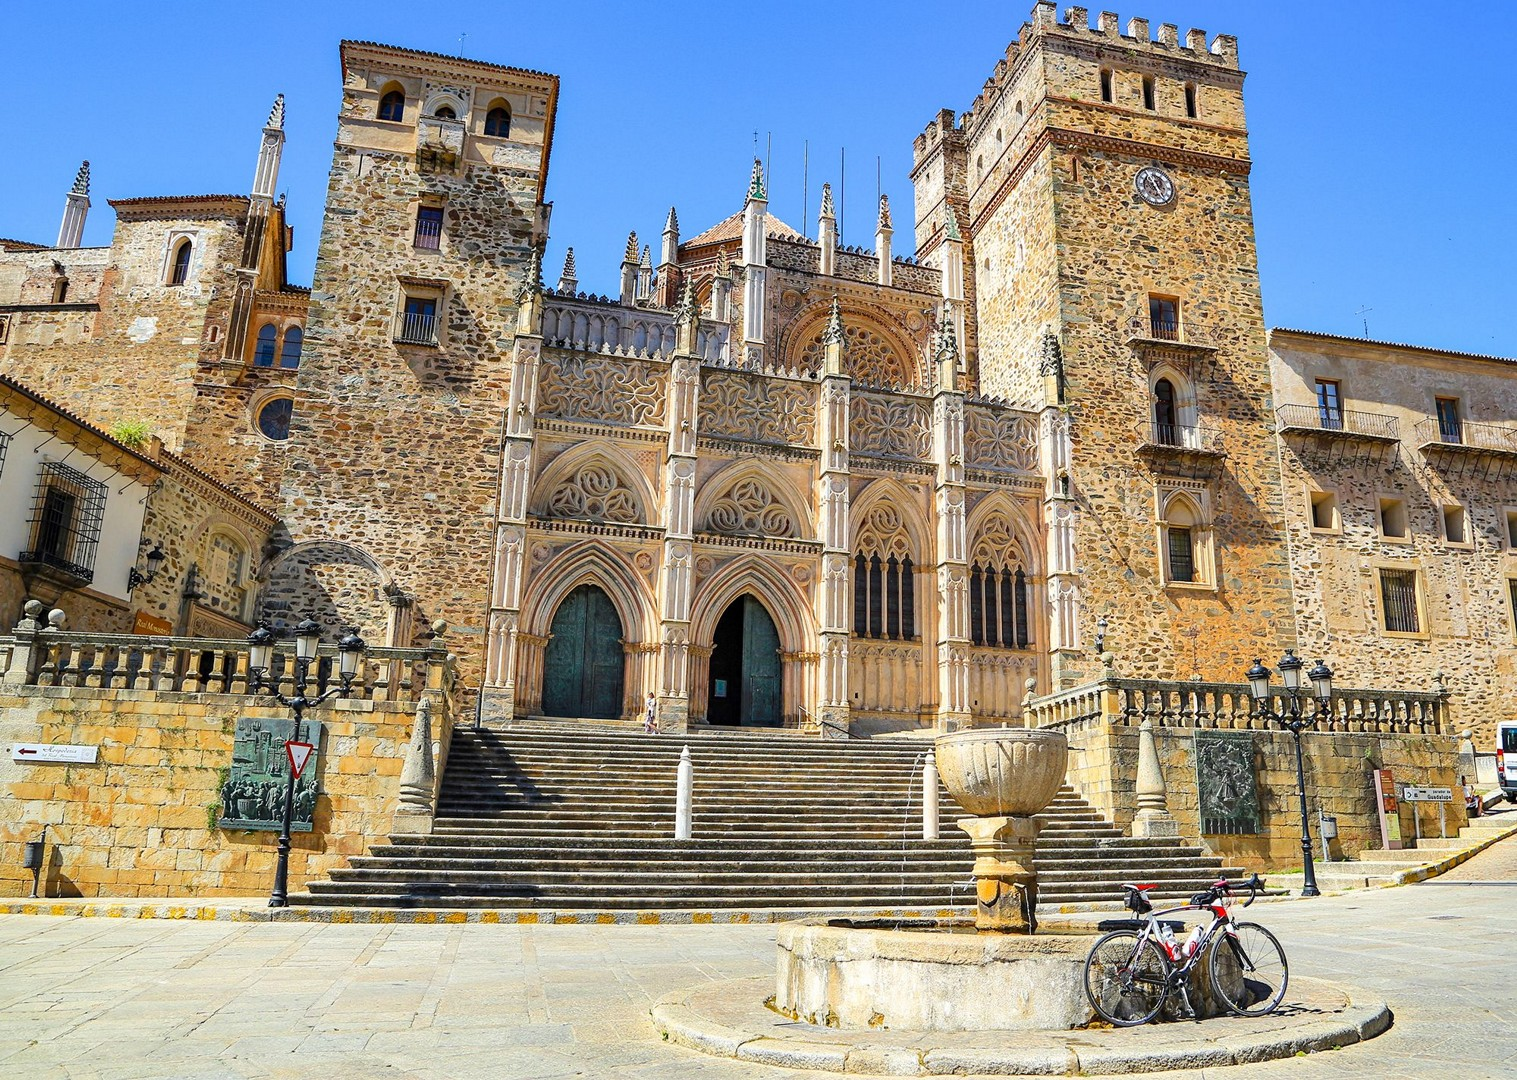 spain-north-to-south-guided-road-cycling-saddle-skedaddle-holiday-culture.jpg - Spain - Basque Country to Andalucia - North to South (16 Days) - Guided Road Cycling Holiday - Road Cycling